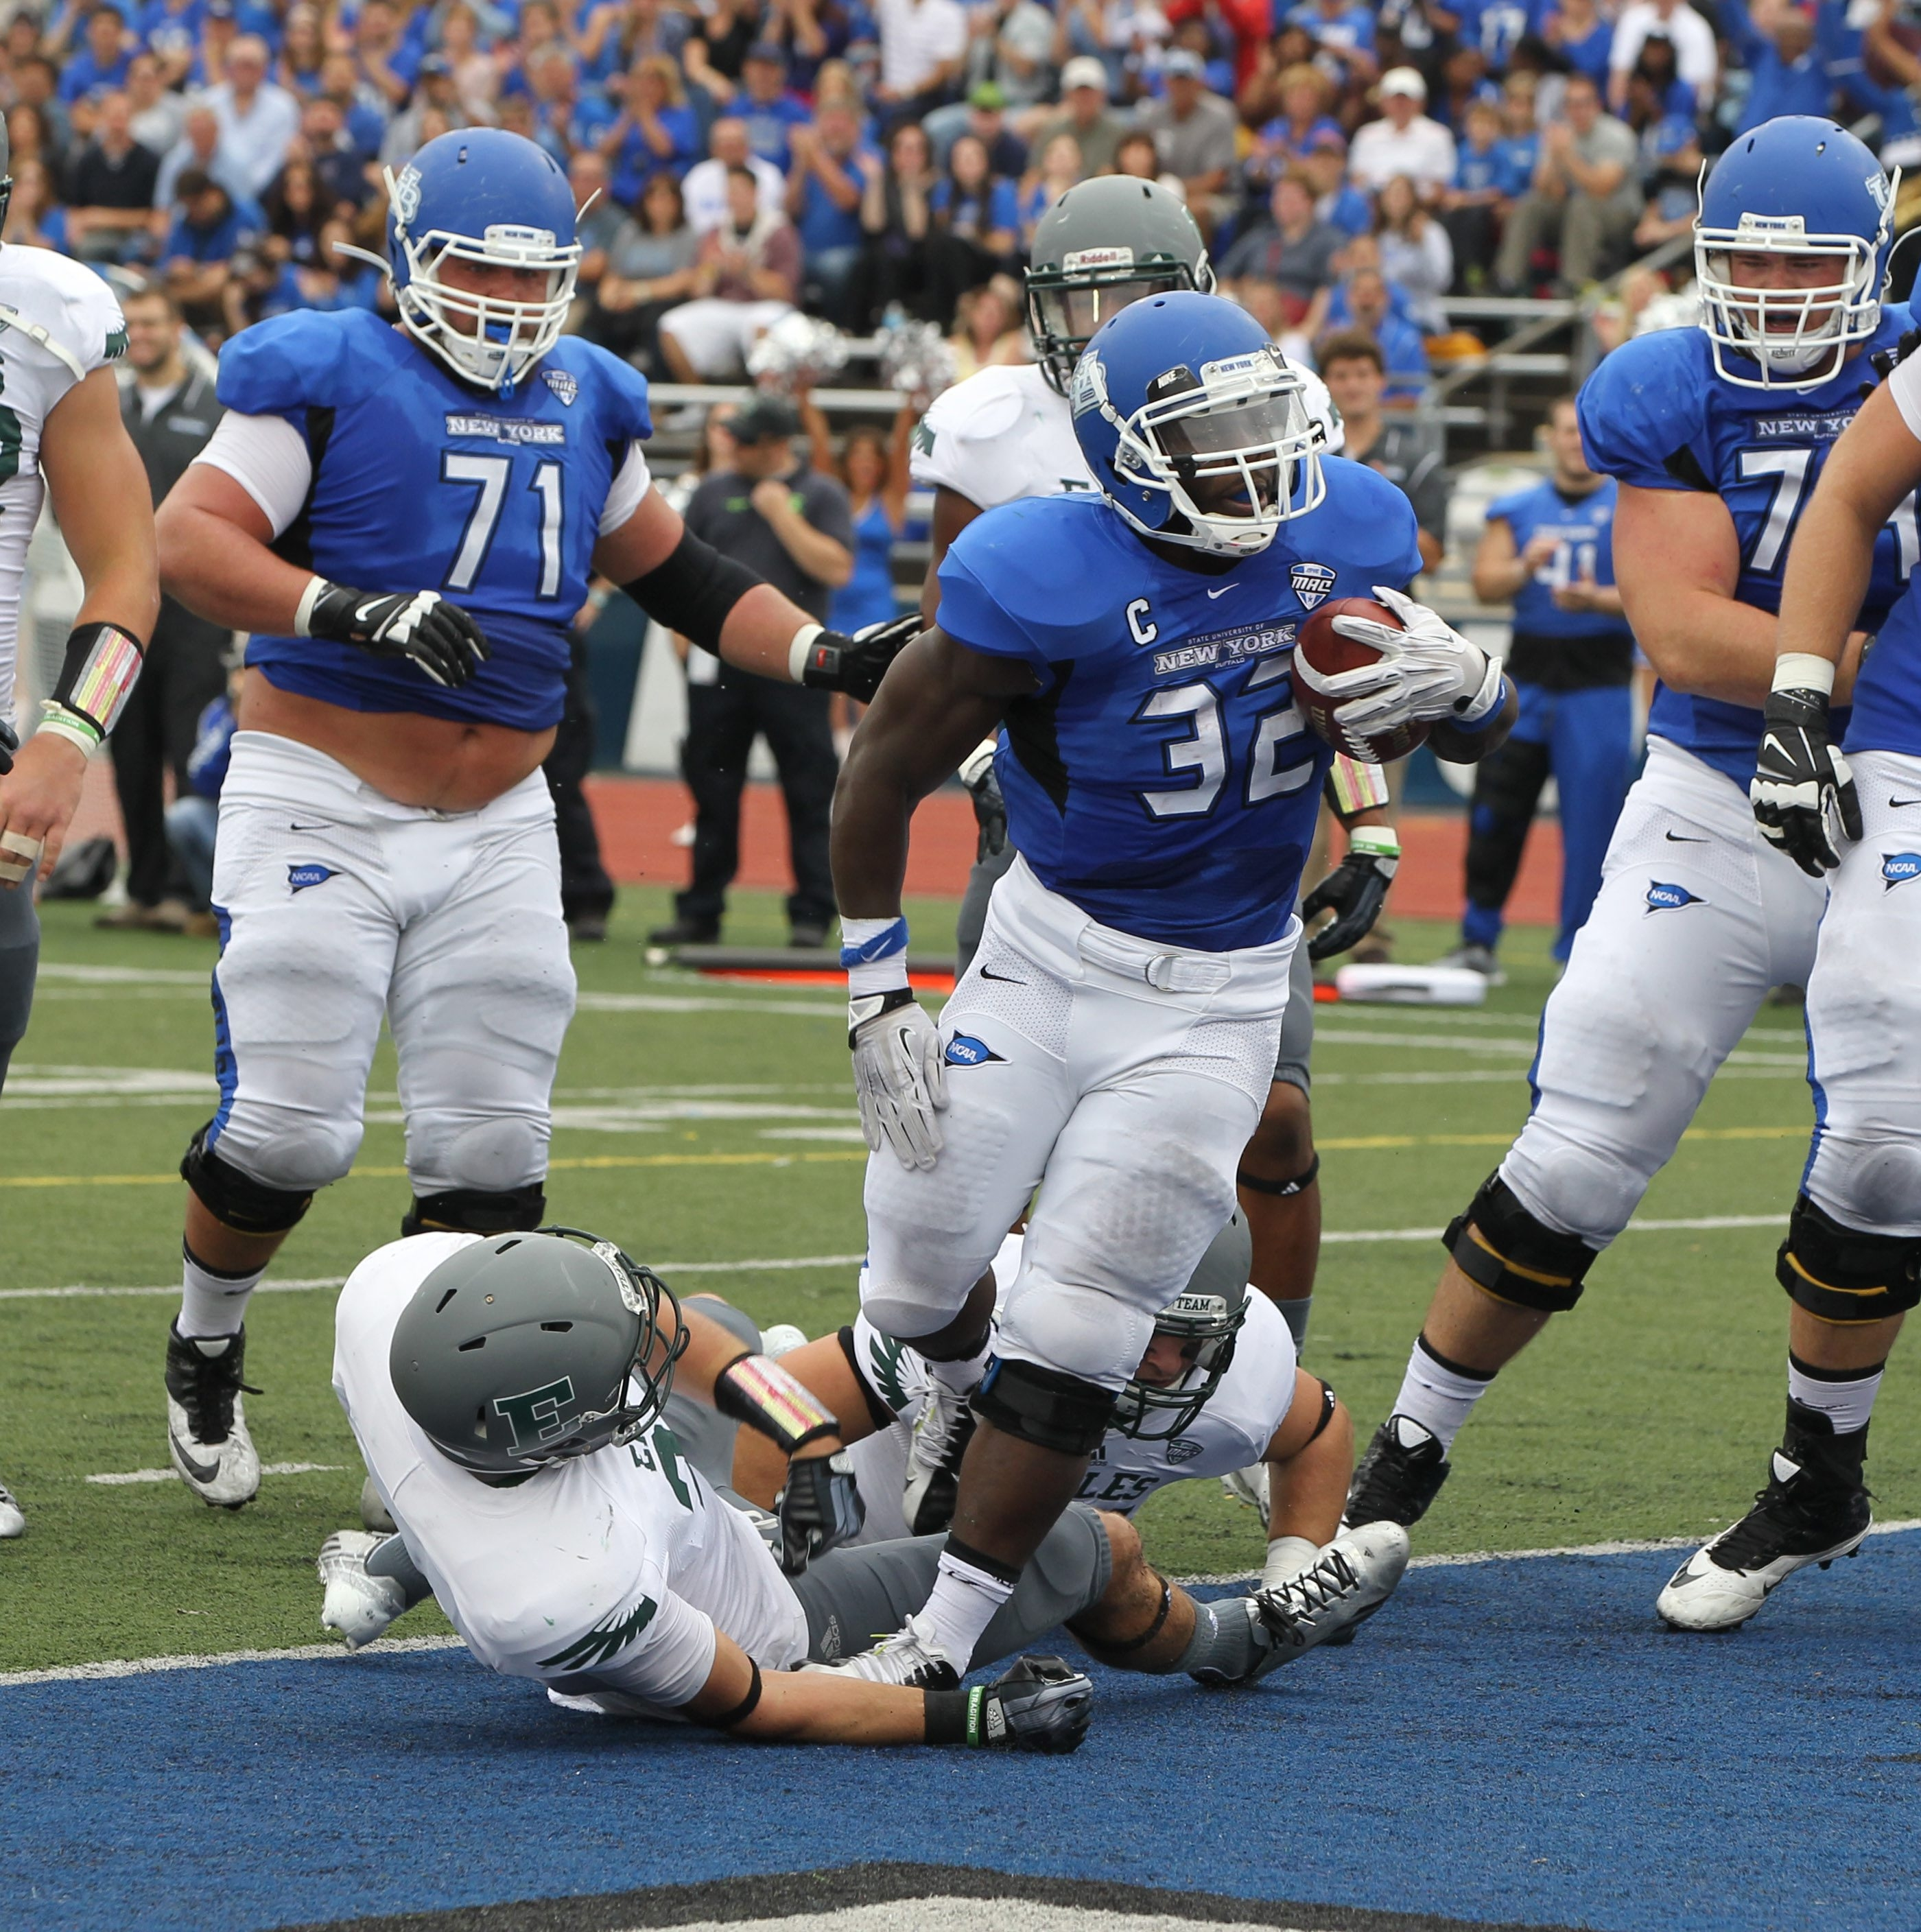 UB running back Branden Oliver was named offensive Player of the Week in the MAC East.